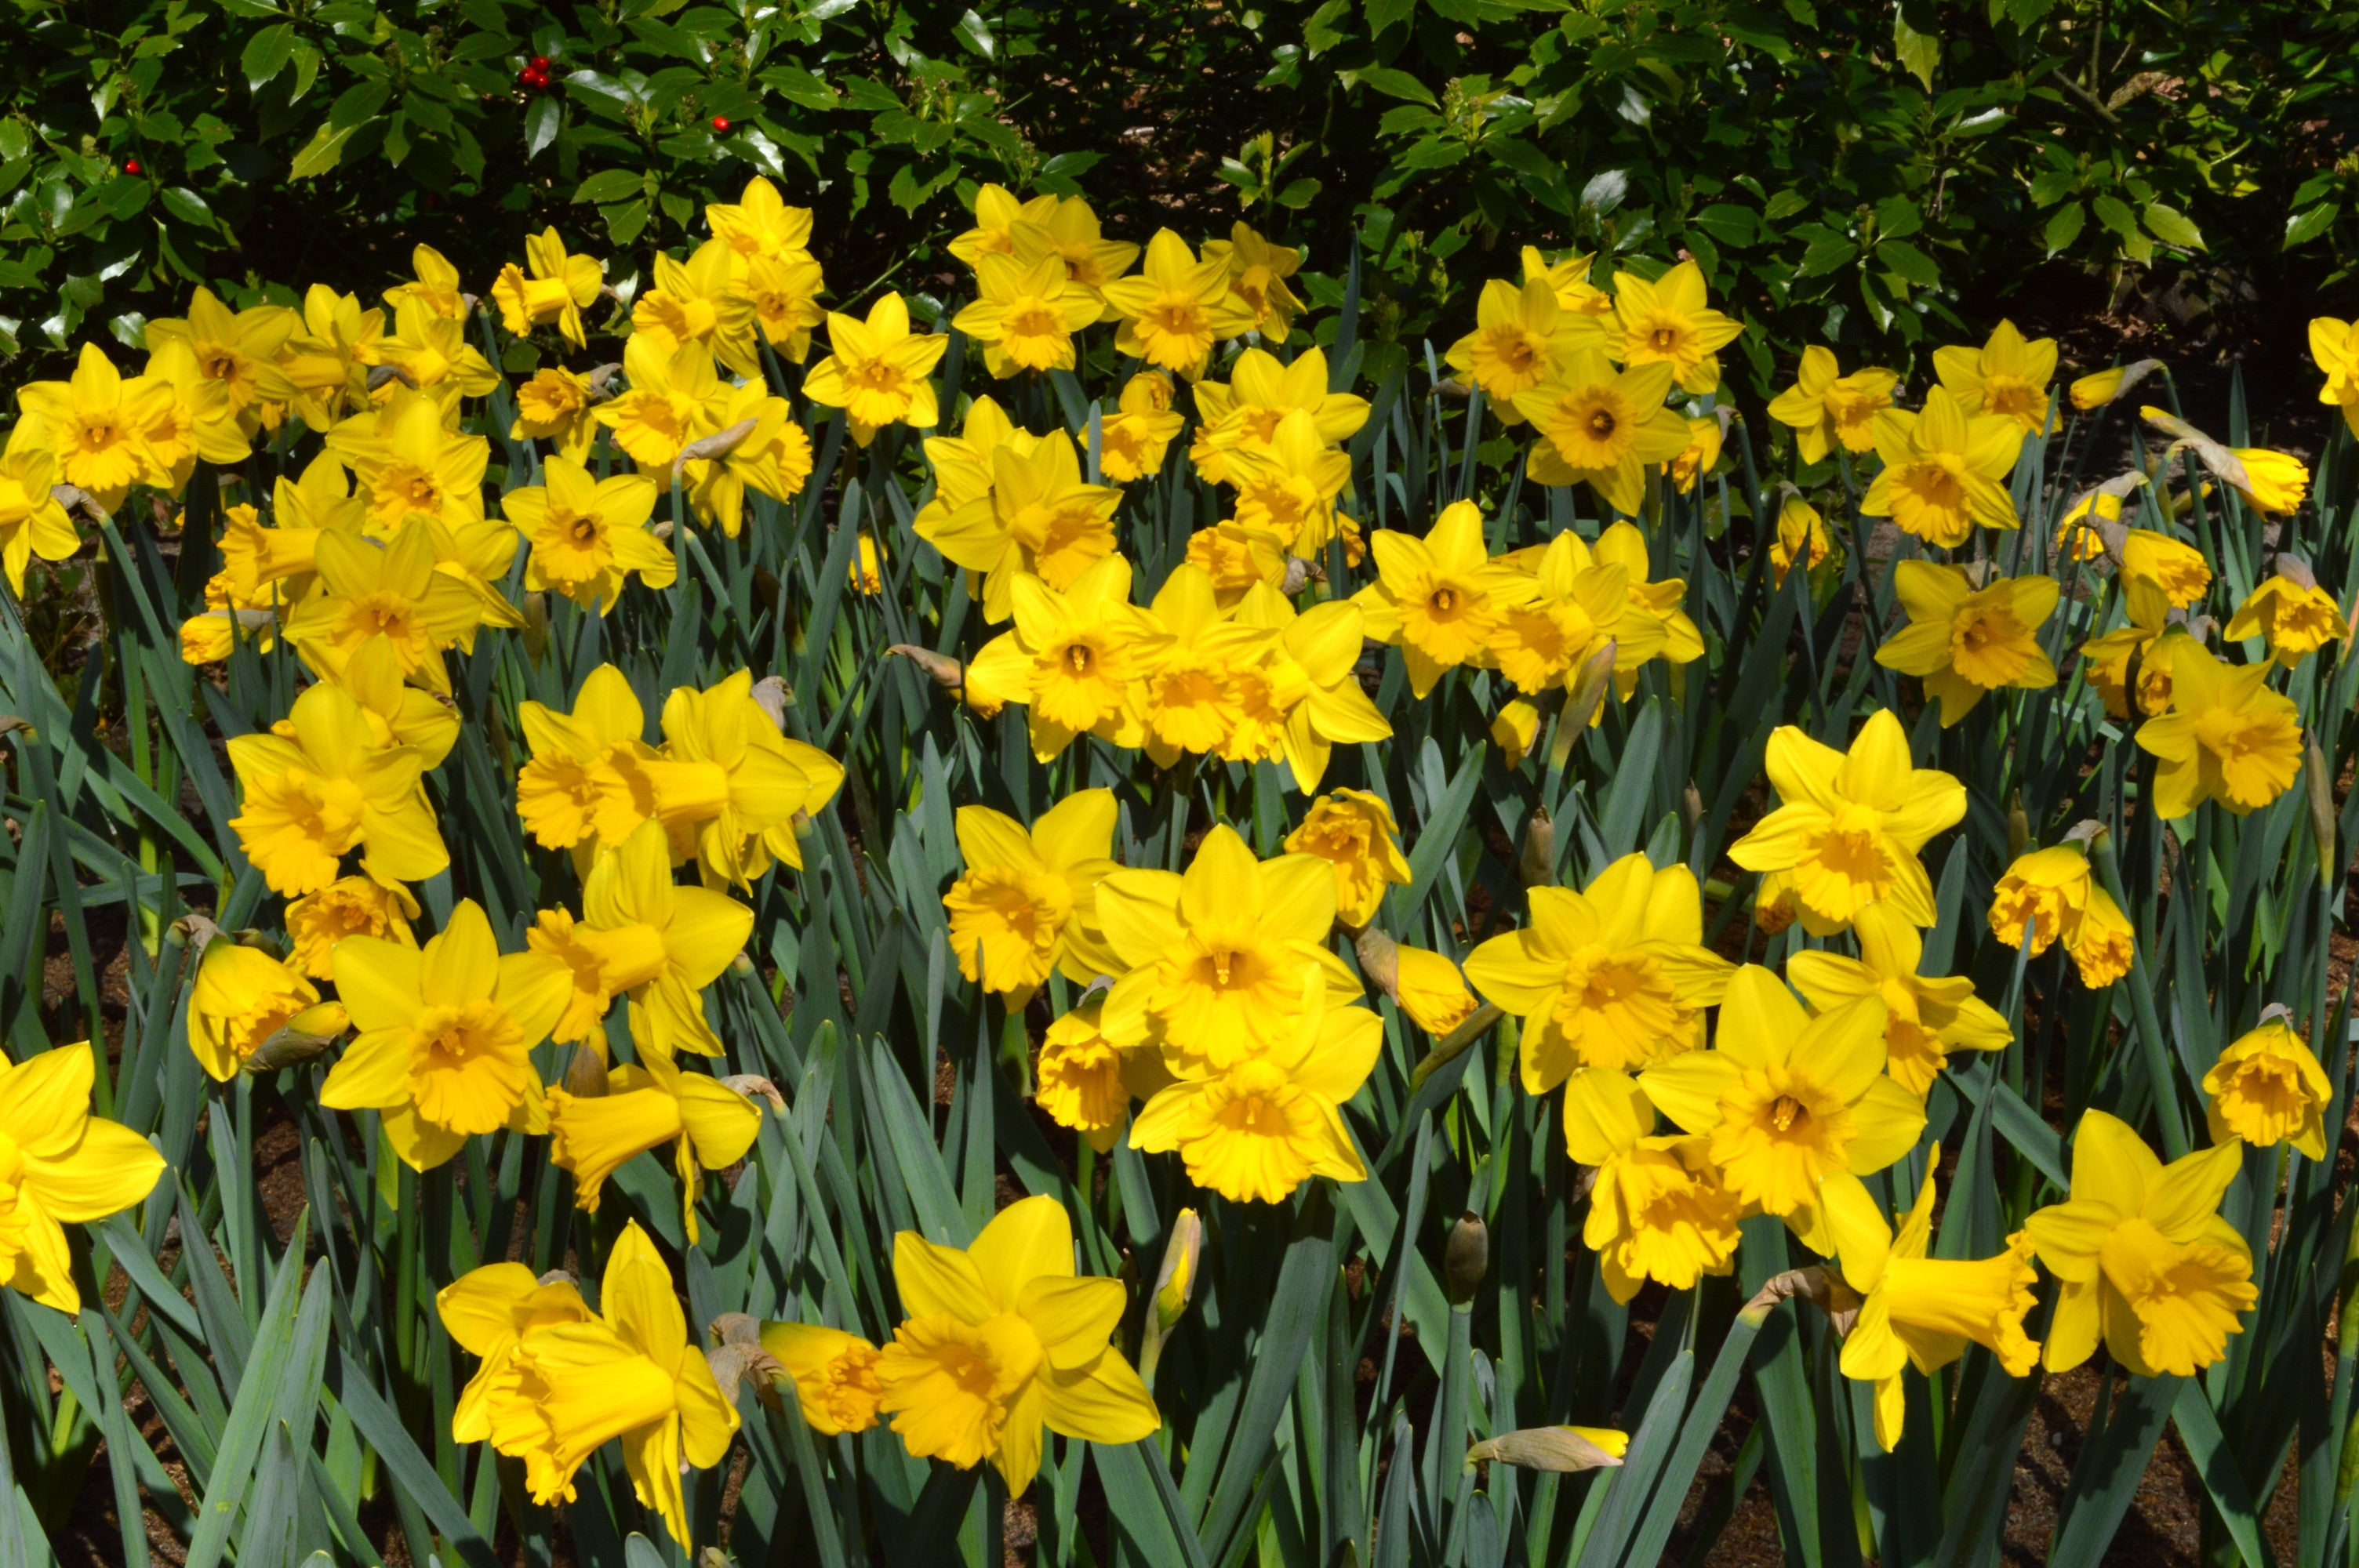 Eight weeks of daffodils landscapers special dutchgrown eight weeks of daffodils size 1214 bulbs daffodil flower bulbs yellow spring flowers mightylinksfo